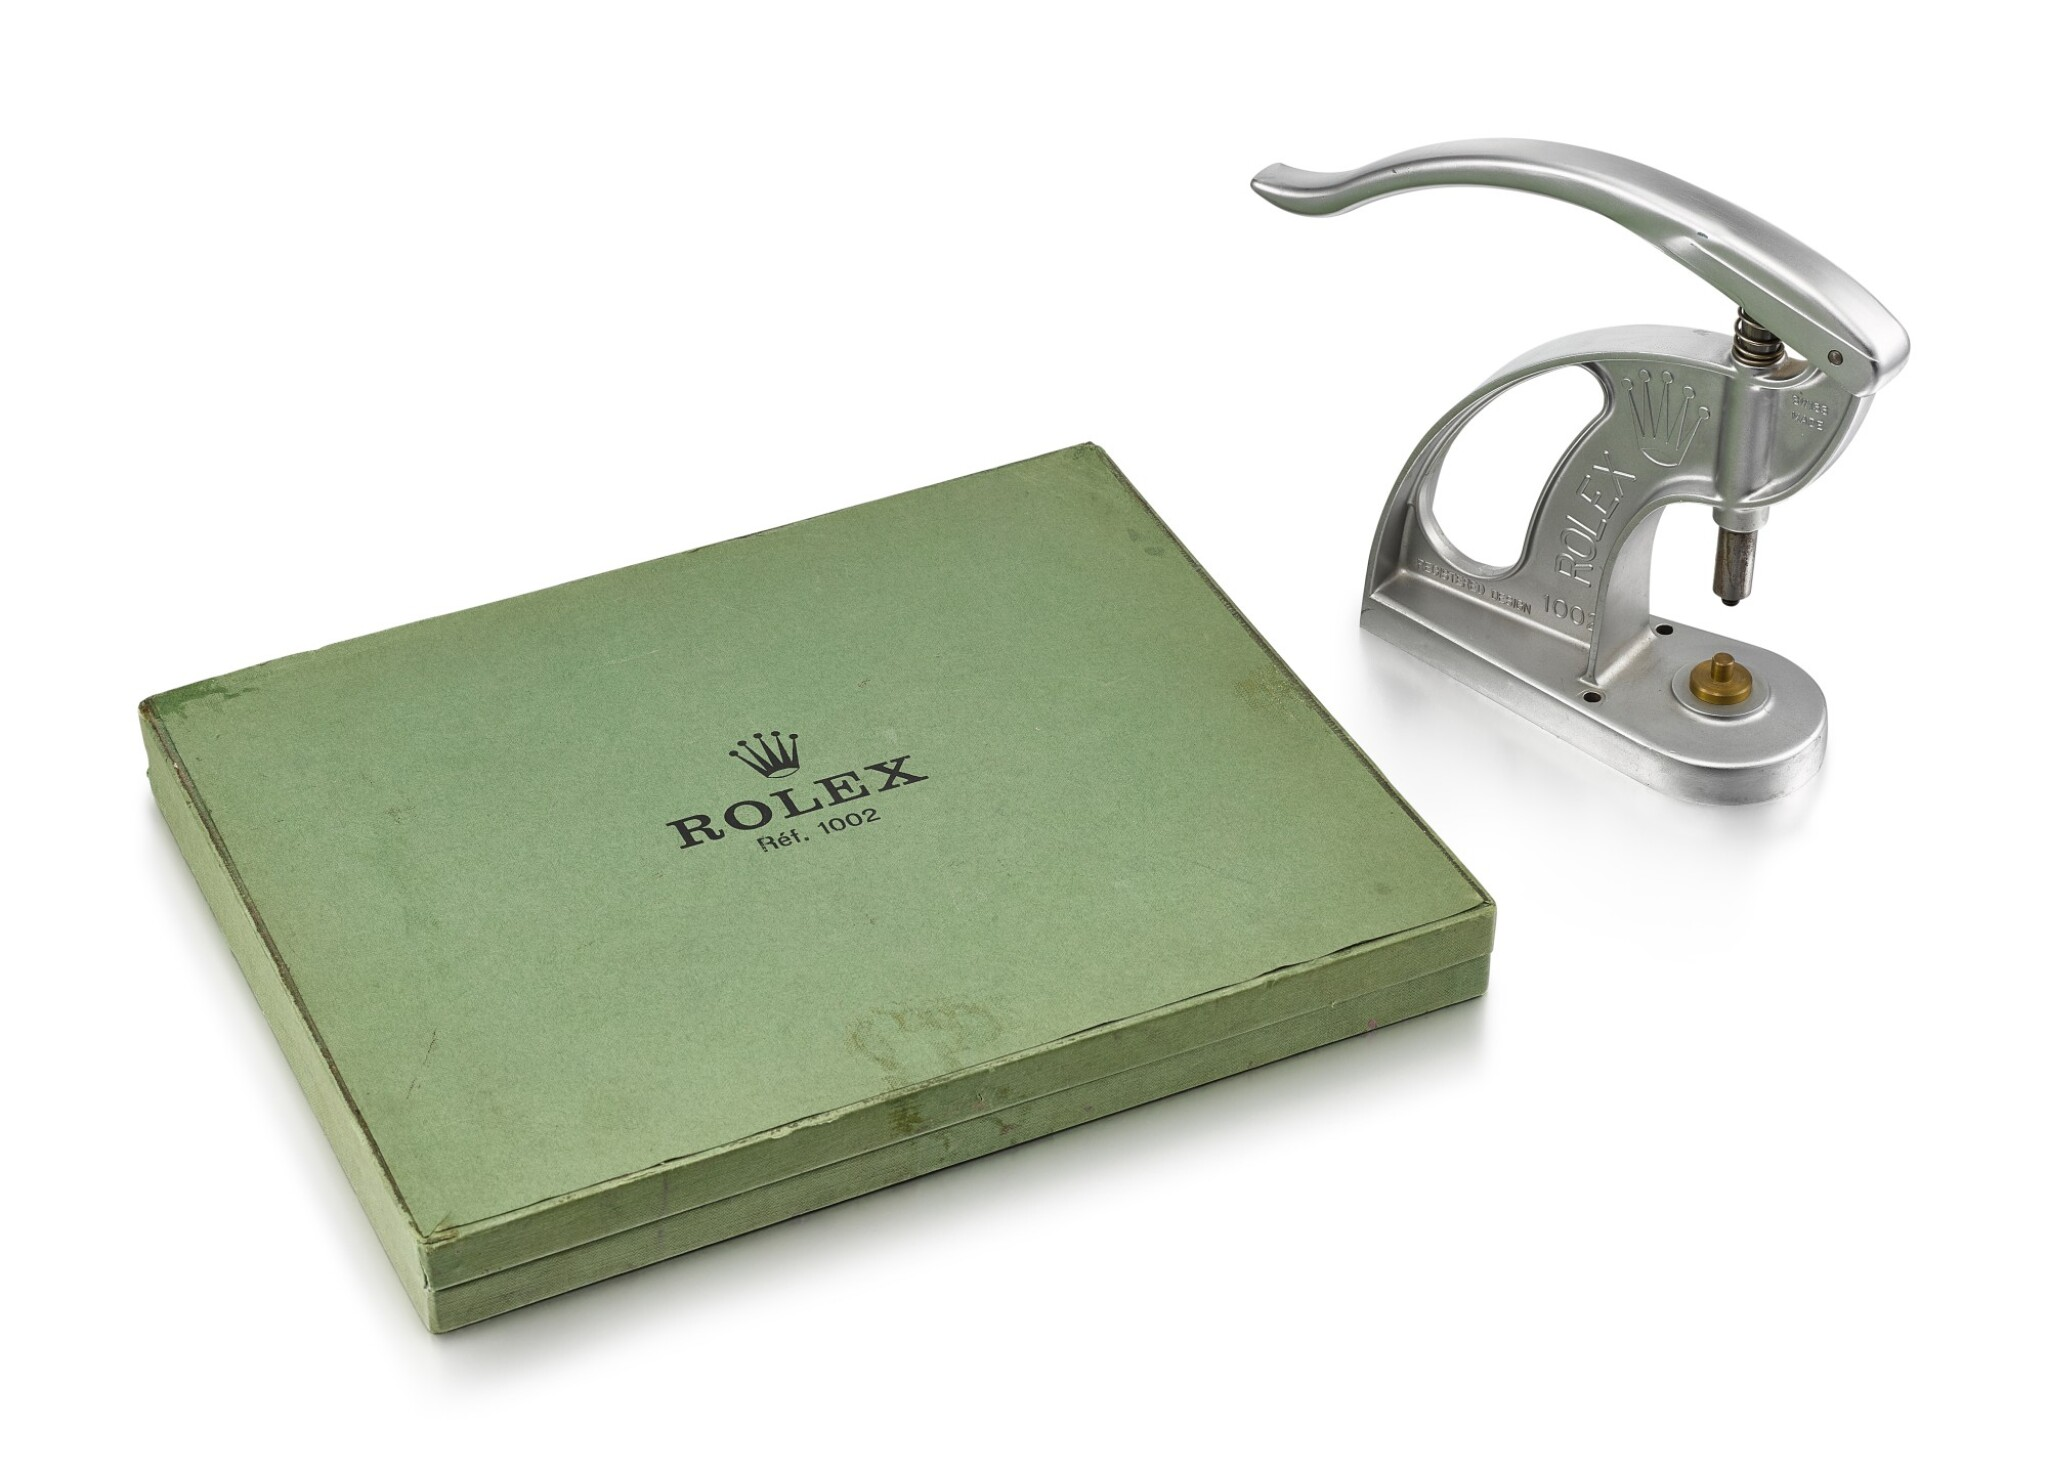 View 1 of Lot 8107. ROLEX | REFERENCE 1002, A STAINLESS STEEL STAKING TOOL FOR BEZELS AND CRYSTALS, CIRCA 1965 AND 23 BRASS JIGS AND ORIGINAL FITTED BOX, CIRCA 1981.